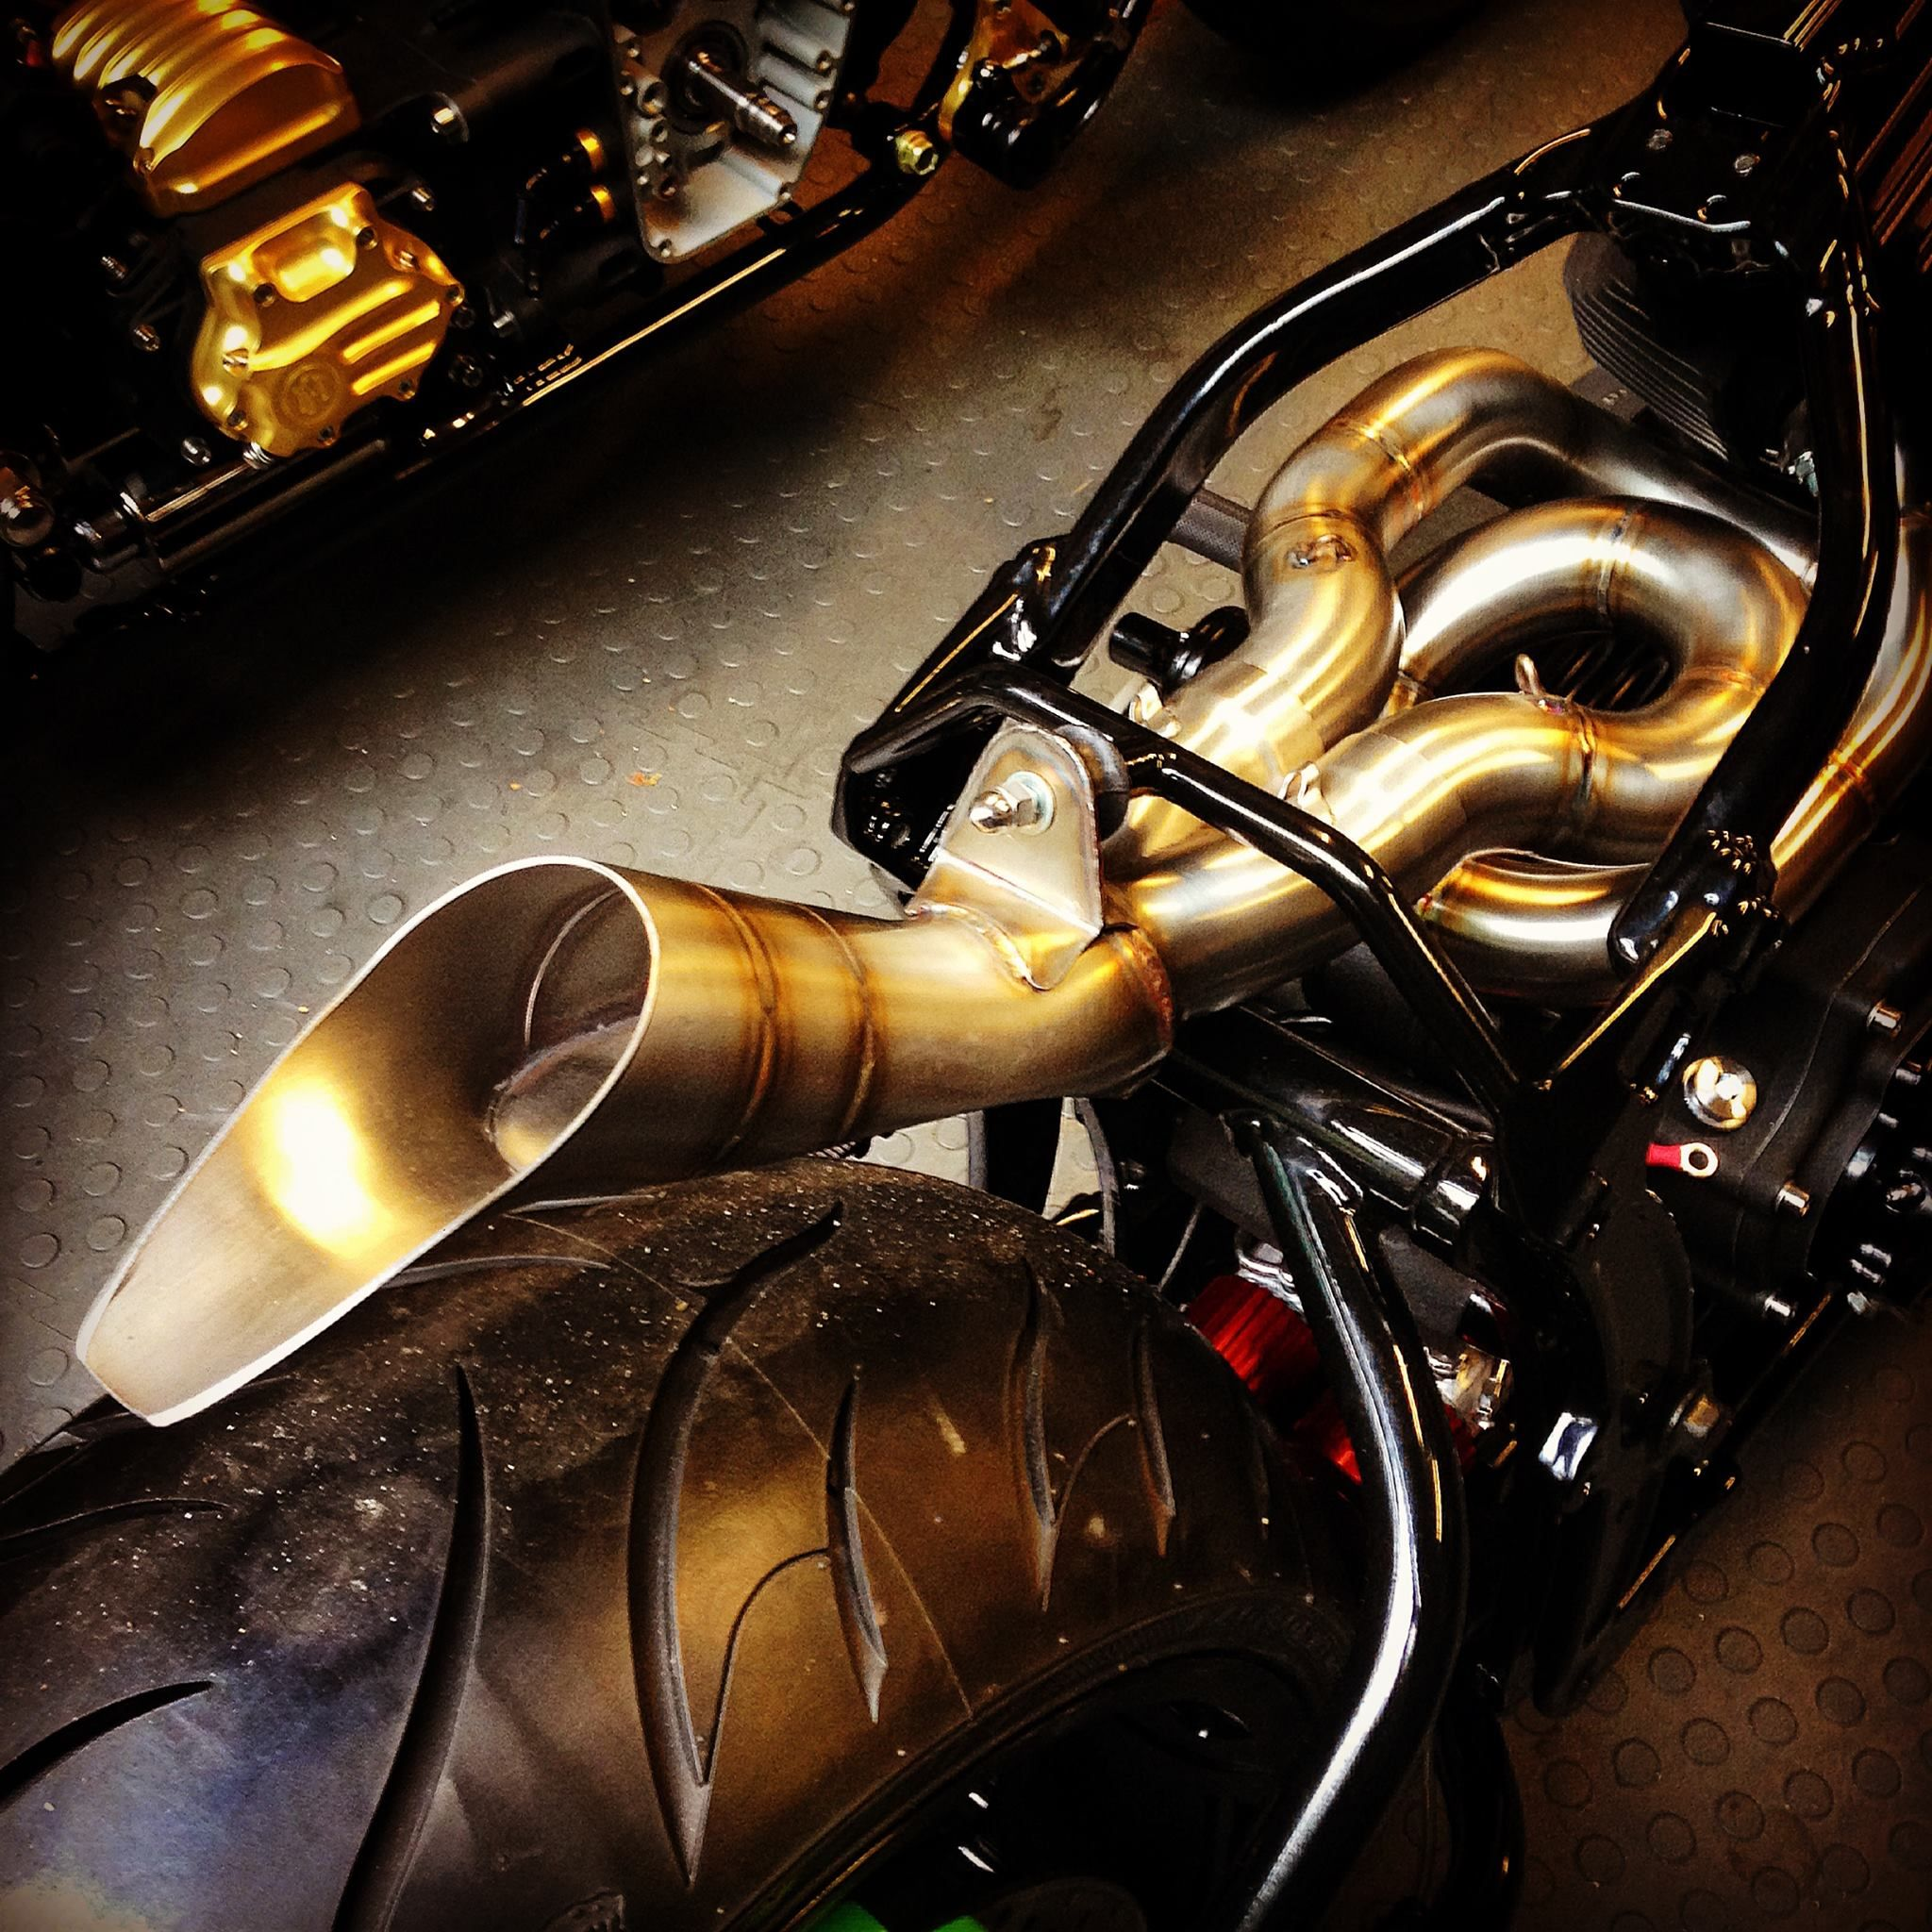 cafe racer motorcycle exhaust